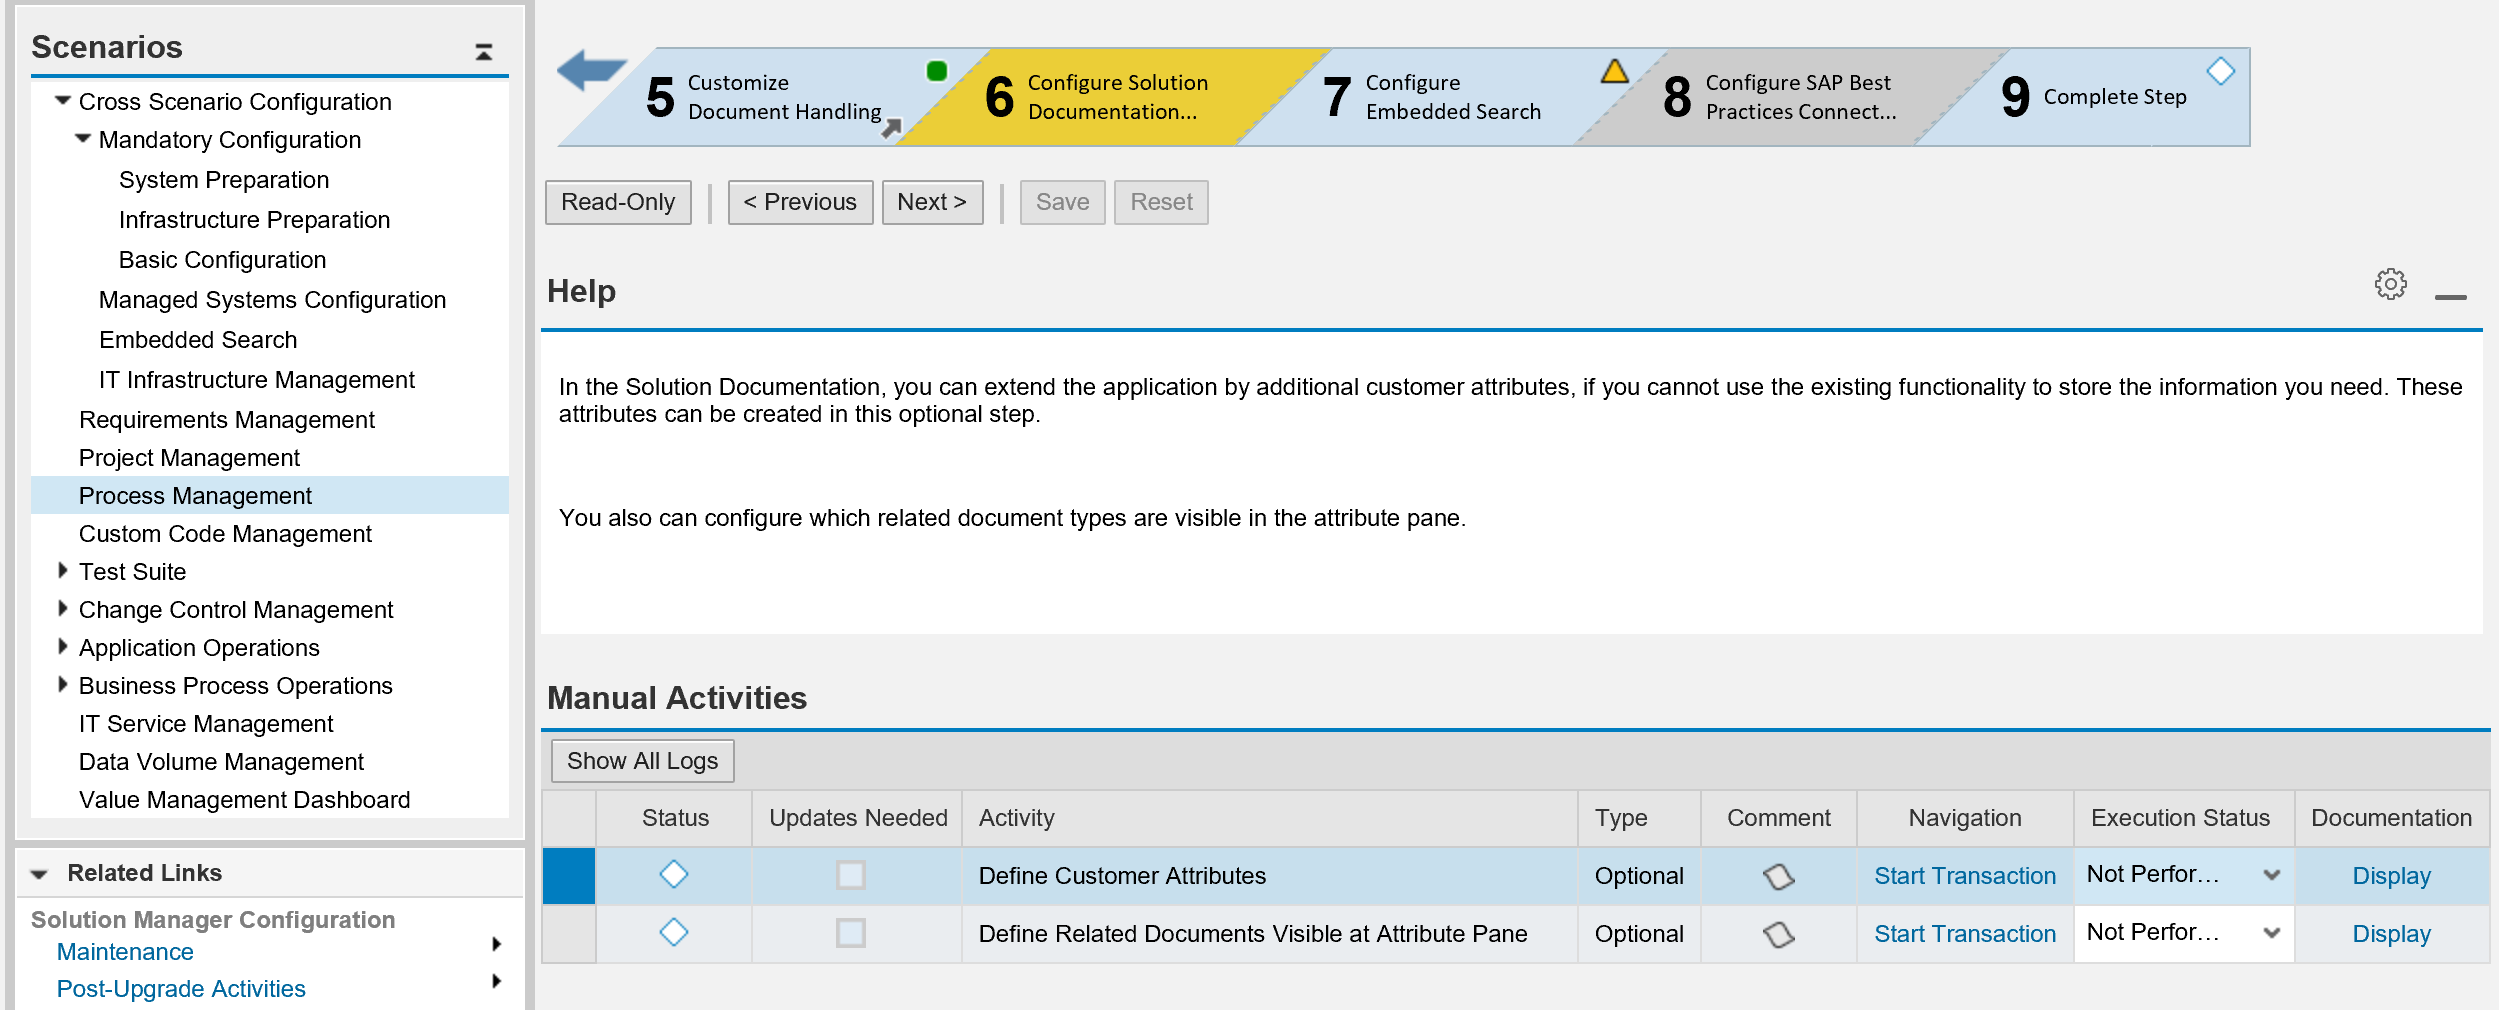 create customer attributes for elements of the process management in rh blogs sap com On Hana SAP Solution Manager SAP Solution Manager Overview Diagram